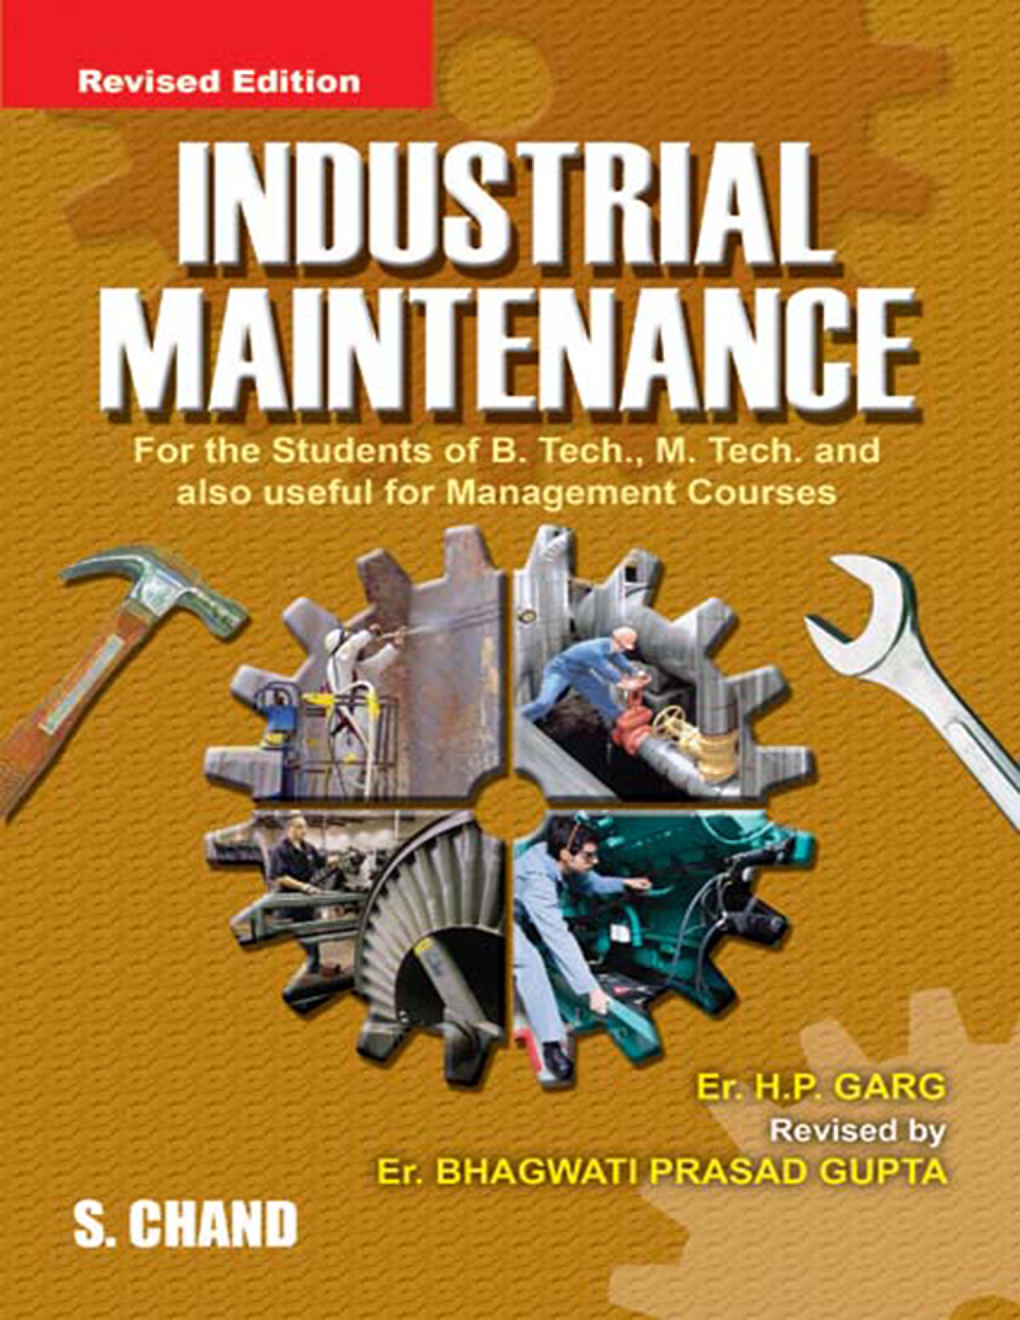 Industrial Maintenance - Page 1